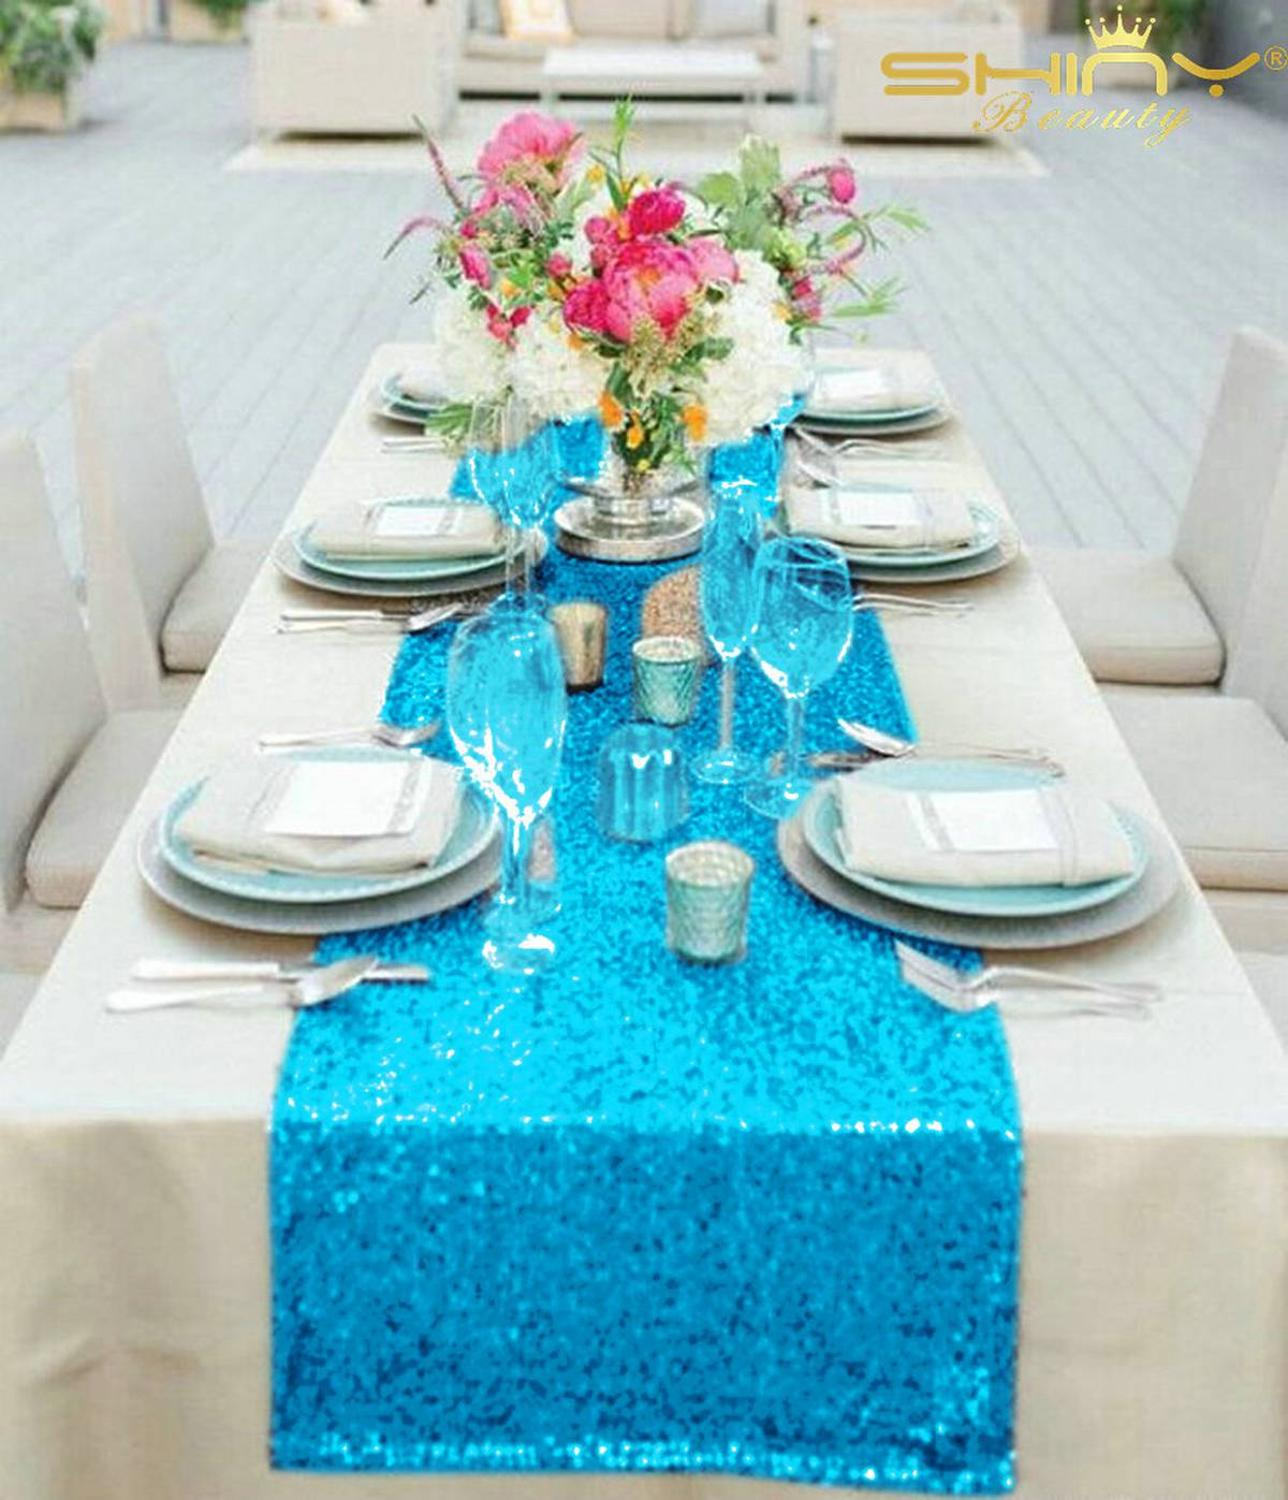 12x72-Inch Table Runner Turquoise Sequin Table Runners Elegant Table Decoration For Wedding Party-M1012